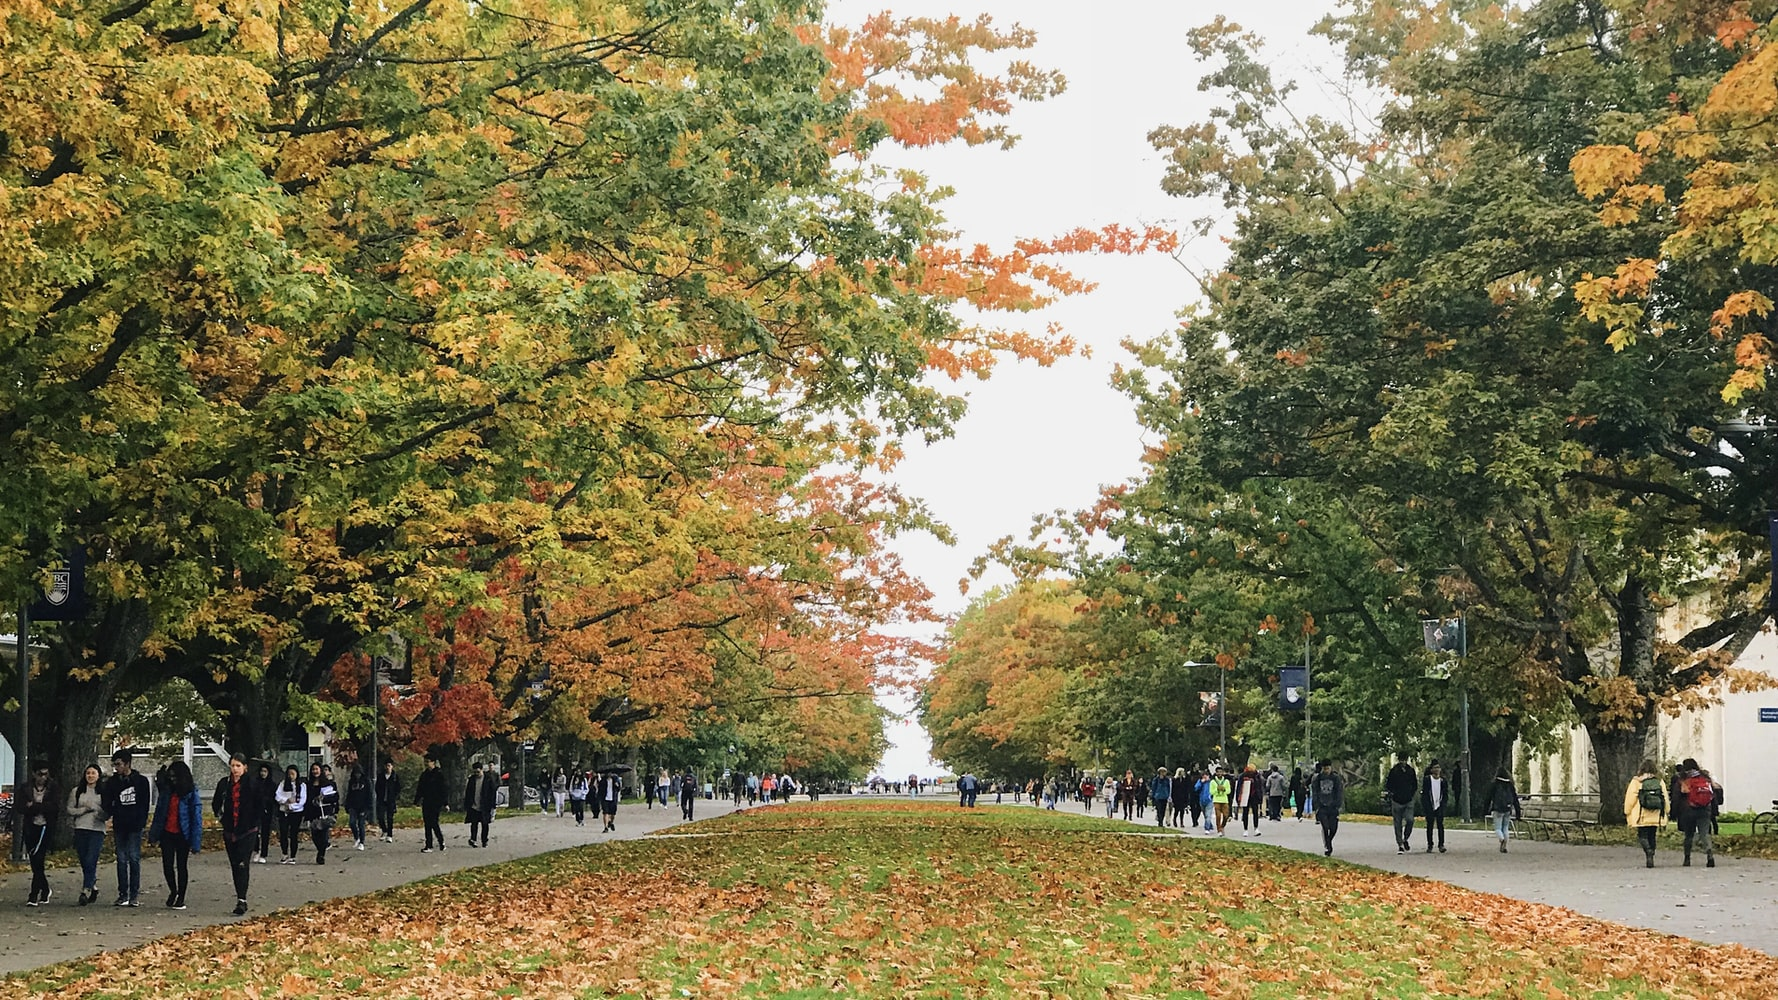 UBC campus in the fall